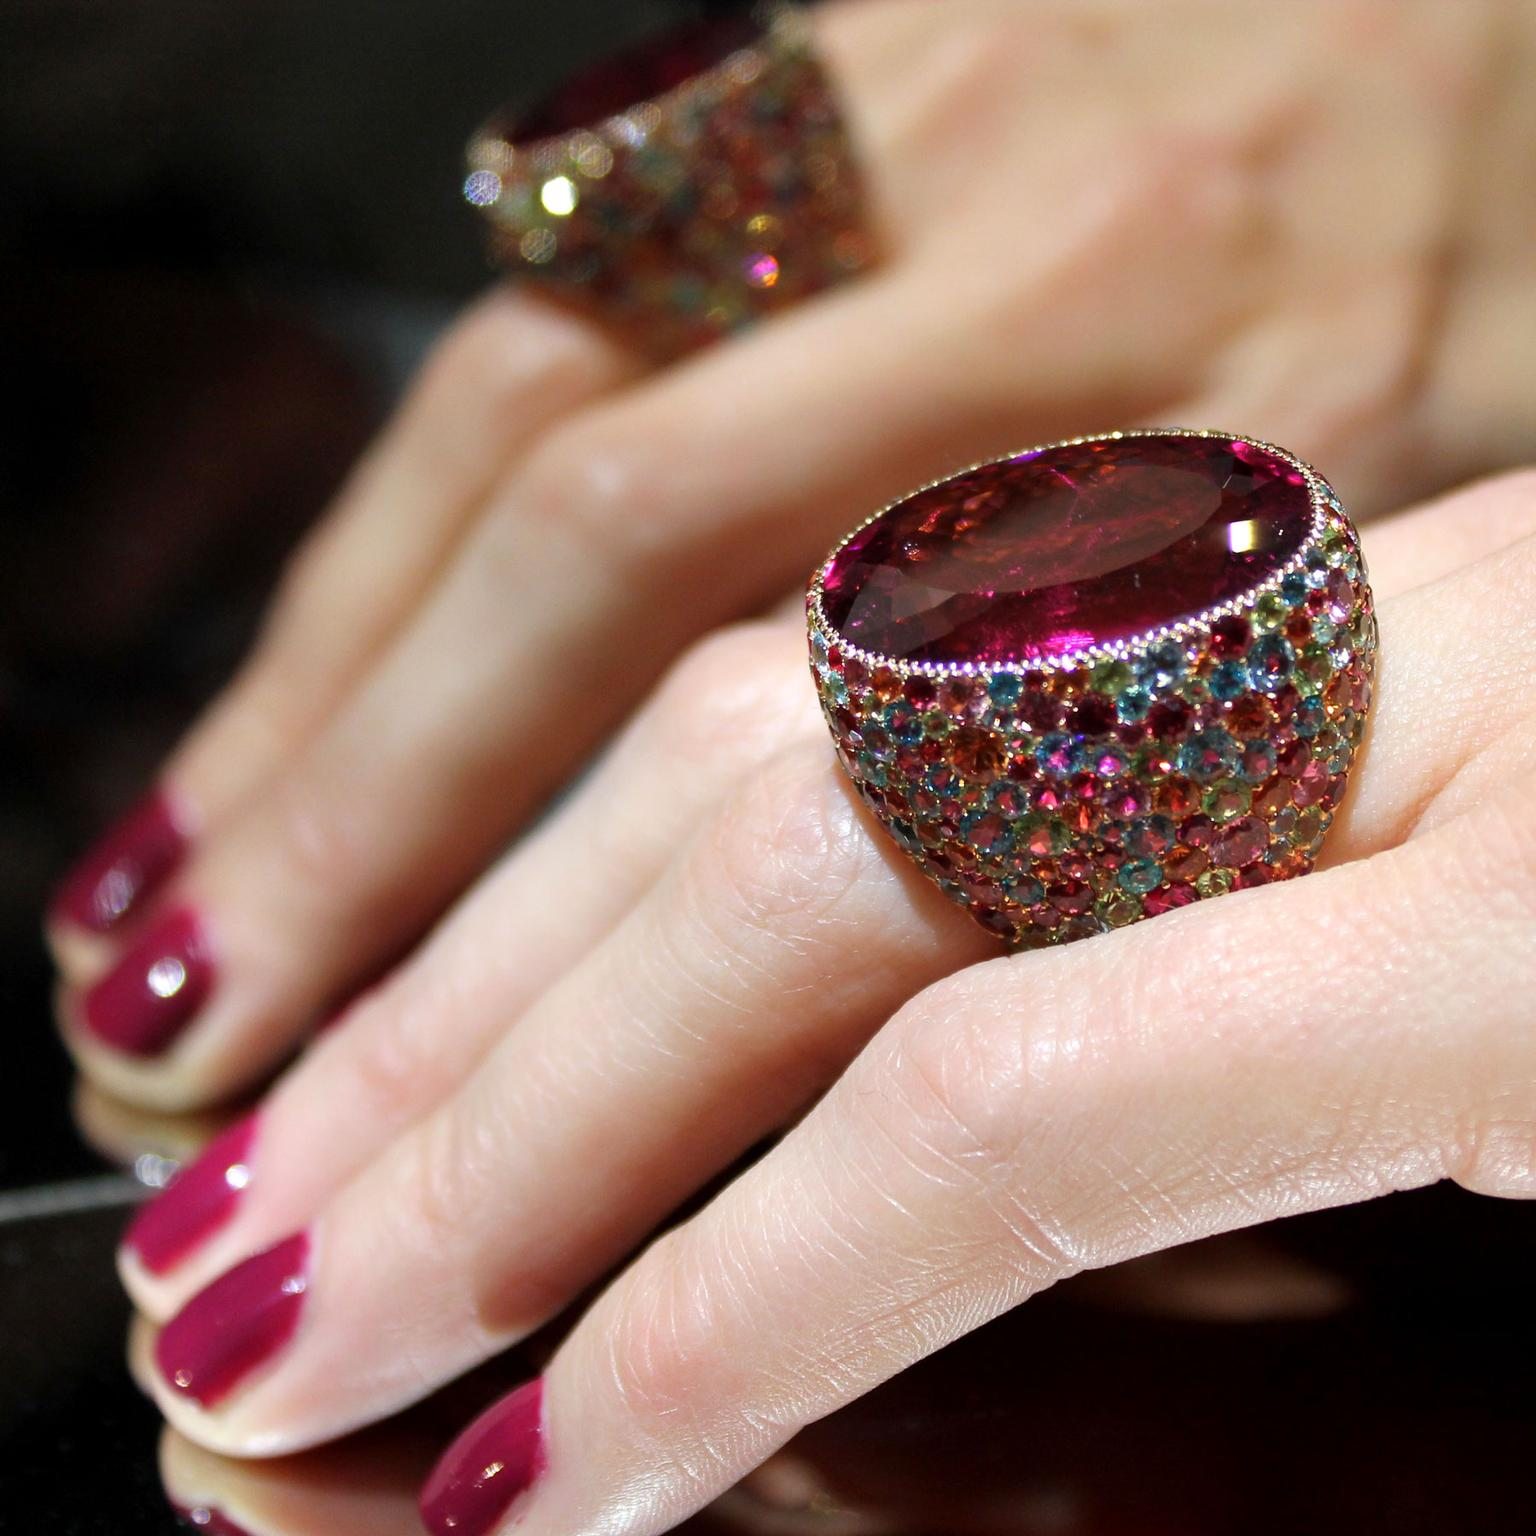 Lorenz Baumer Cardinale rubellite ring, seen at Paris Couture Week